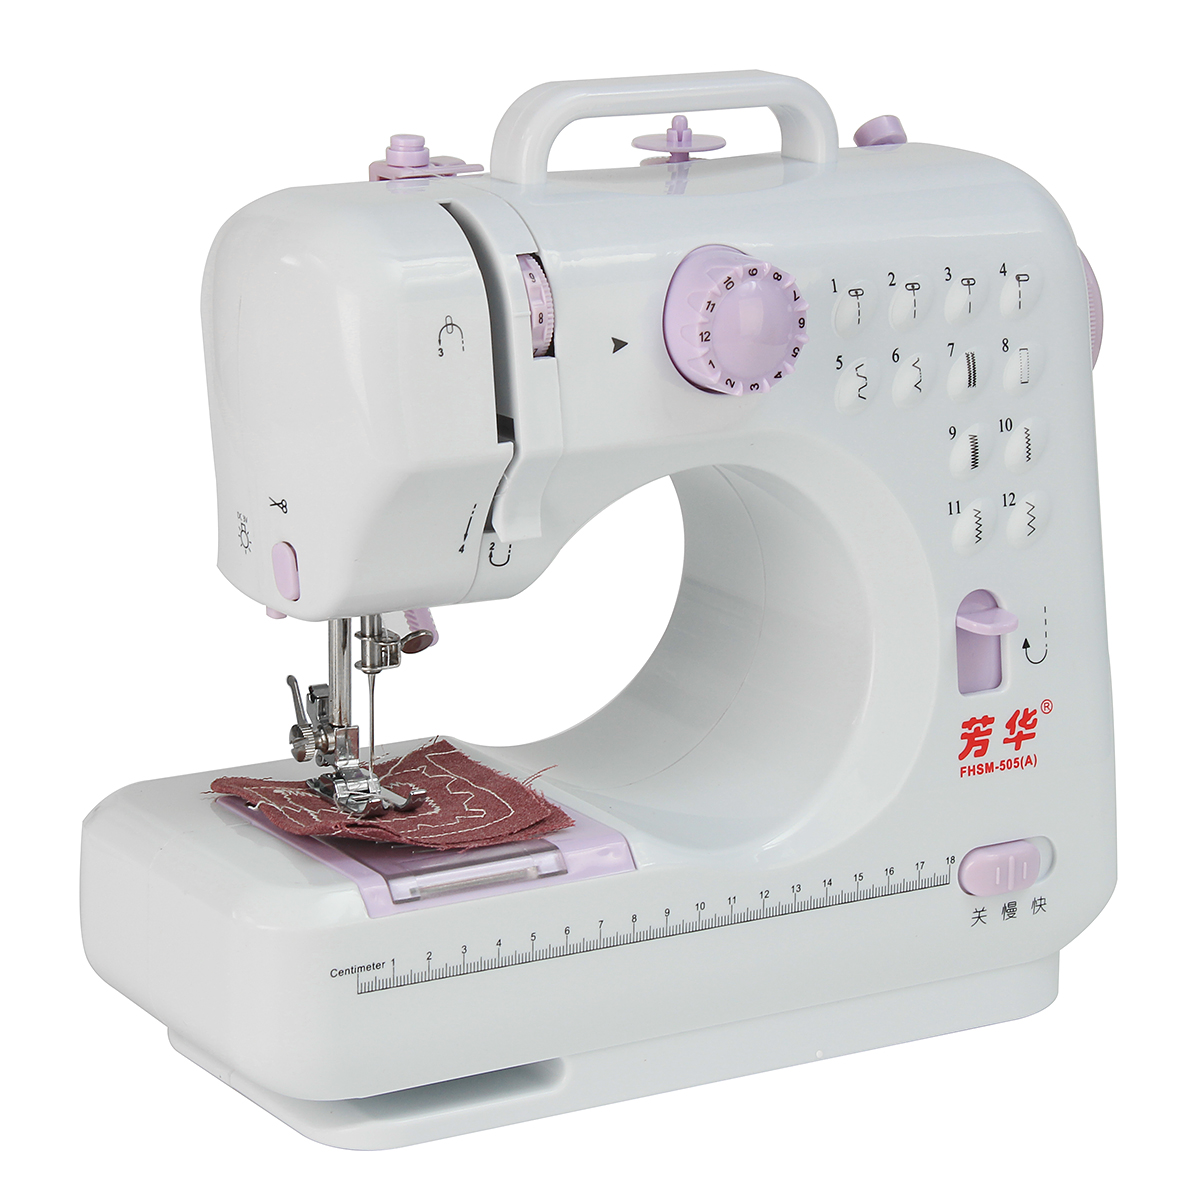 110-240V Portable Mini Electric Household Sewing Machine Two speed With Power Adapter US Plug